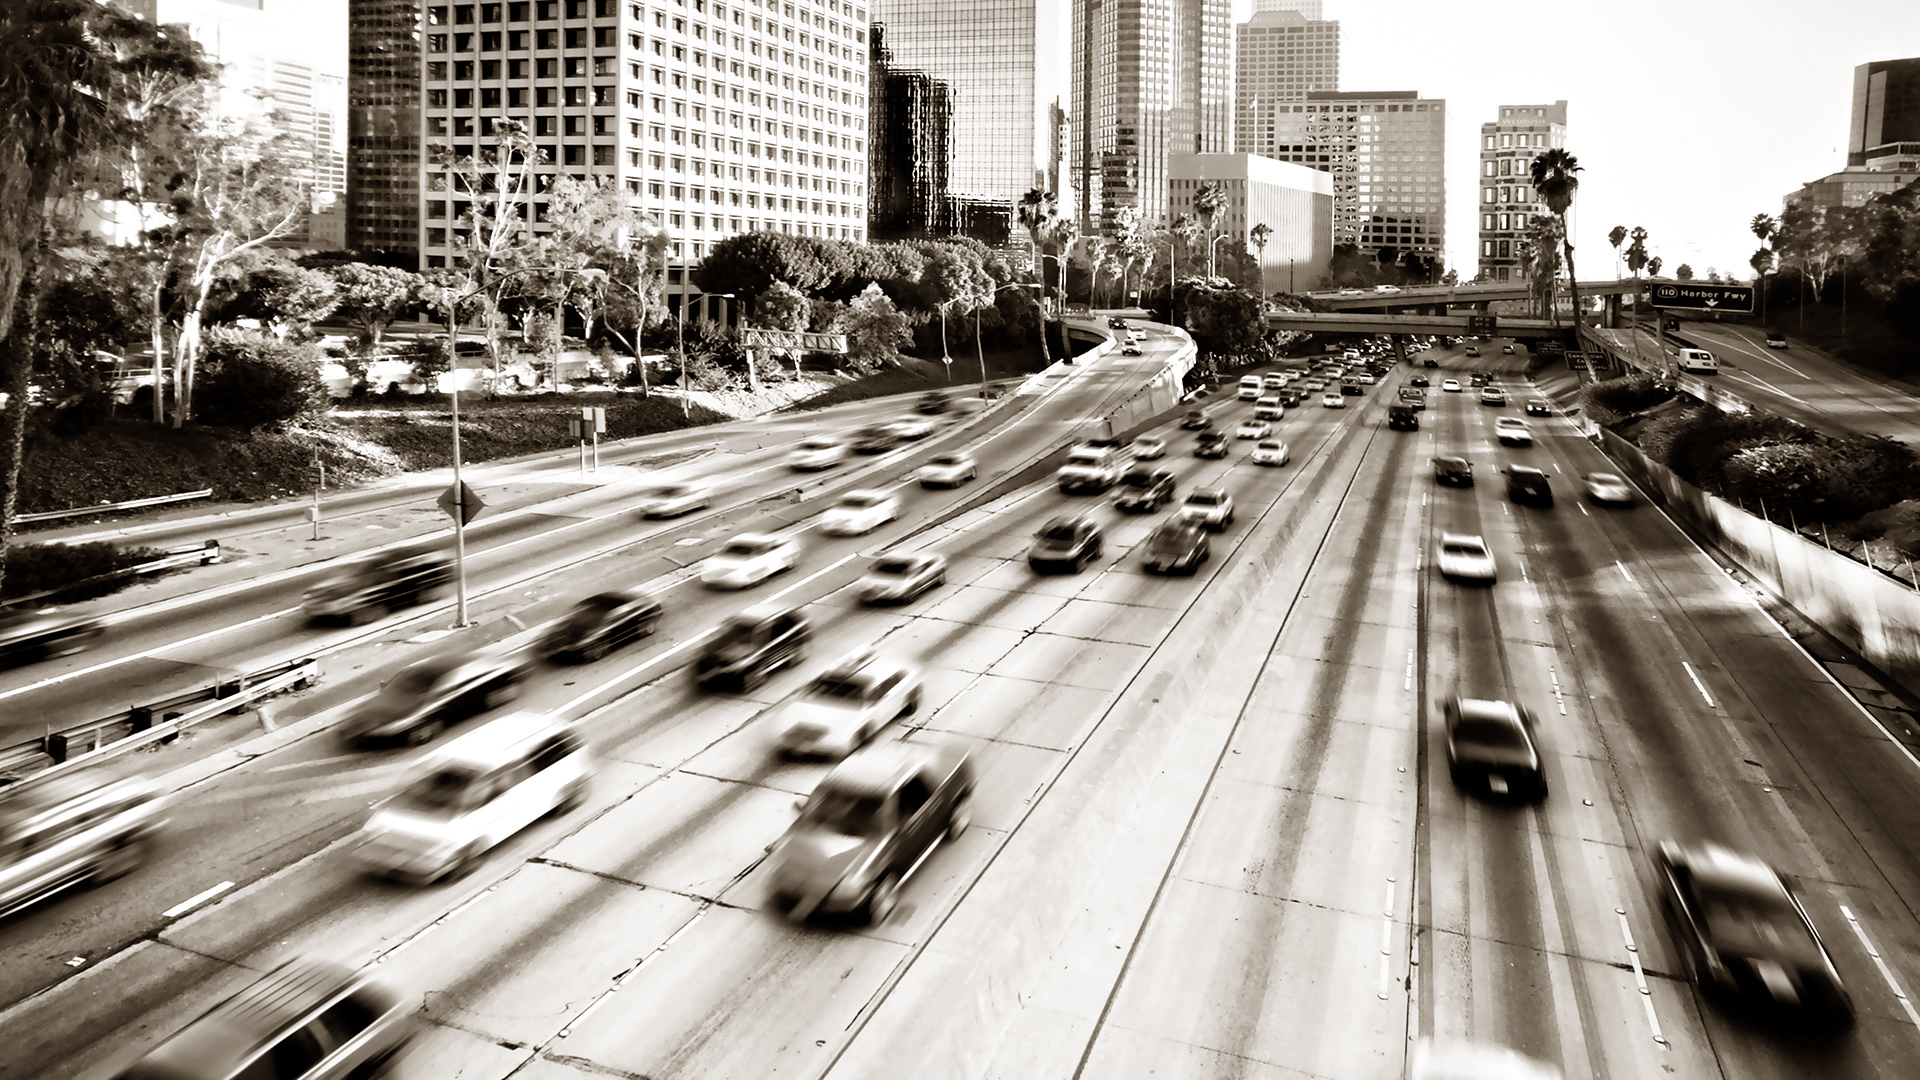 How Can We Plan for Autonomous Vehicles in Urban Environments?